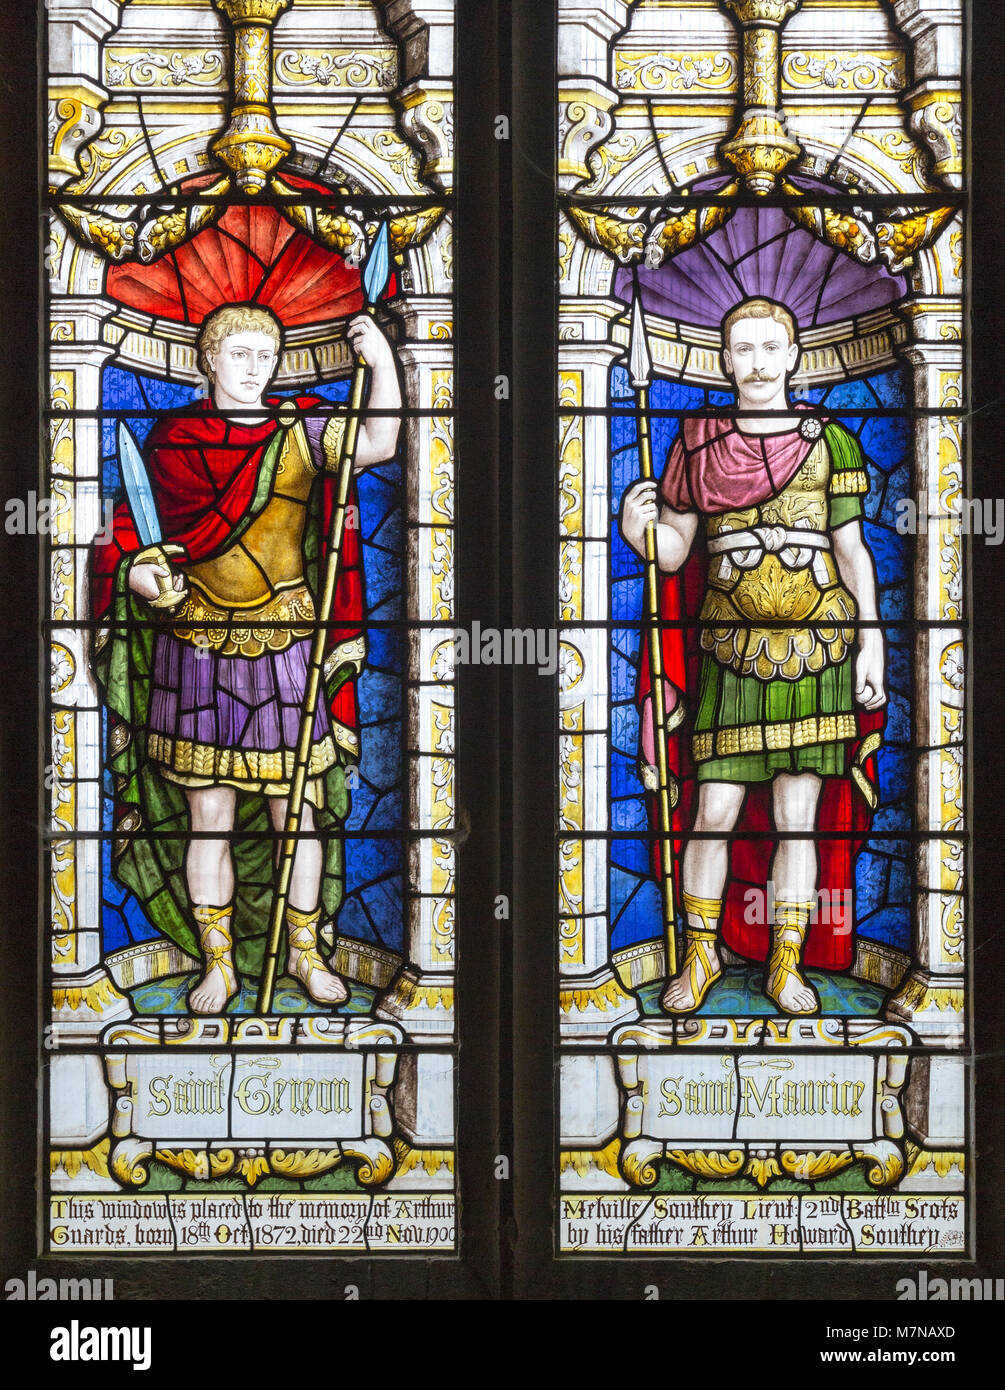 Stained glass window depicting Saint Gereon of Cologne and Saint Maurice, Parish Church of St Aldhelm, Bishopstrow, - Stock Image